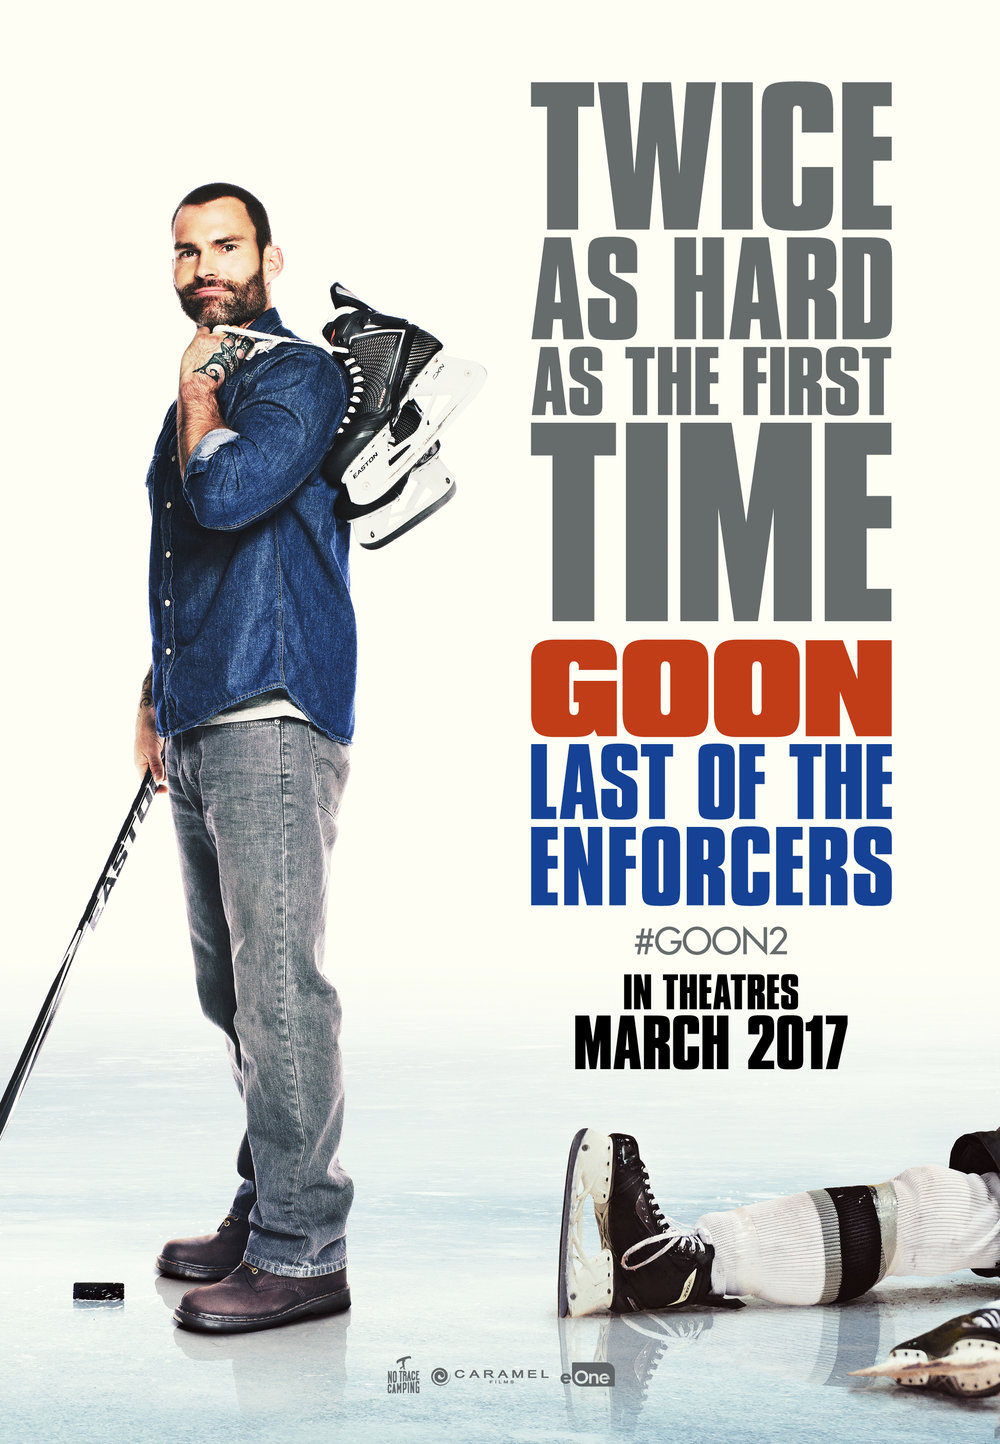 GOON: LAST OF THE ENFORCERS (2017) Dir. Jay Baruchel